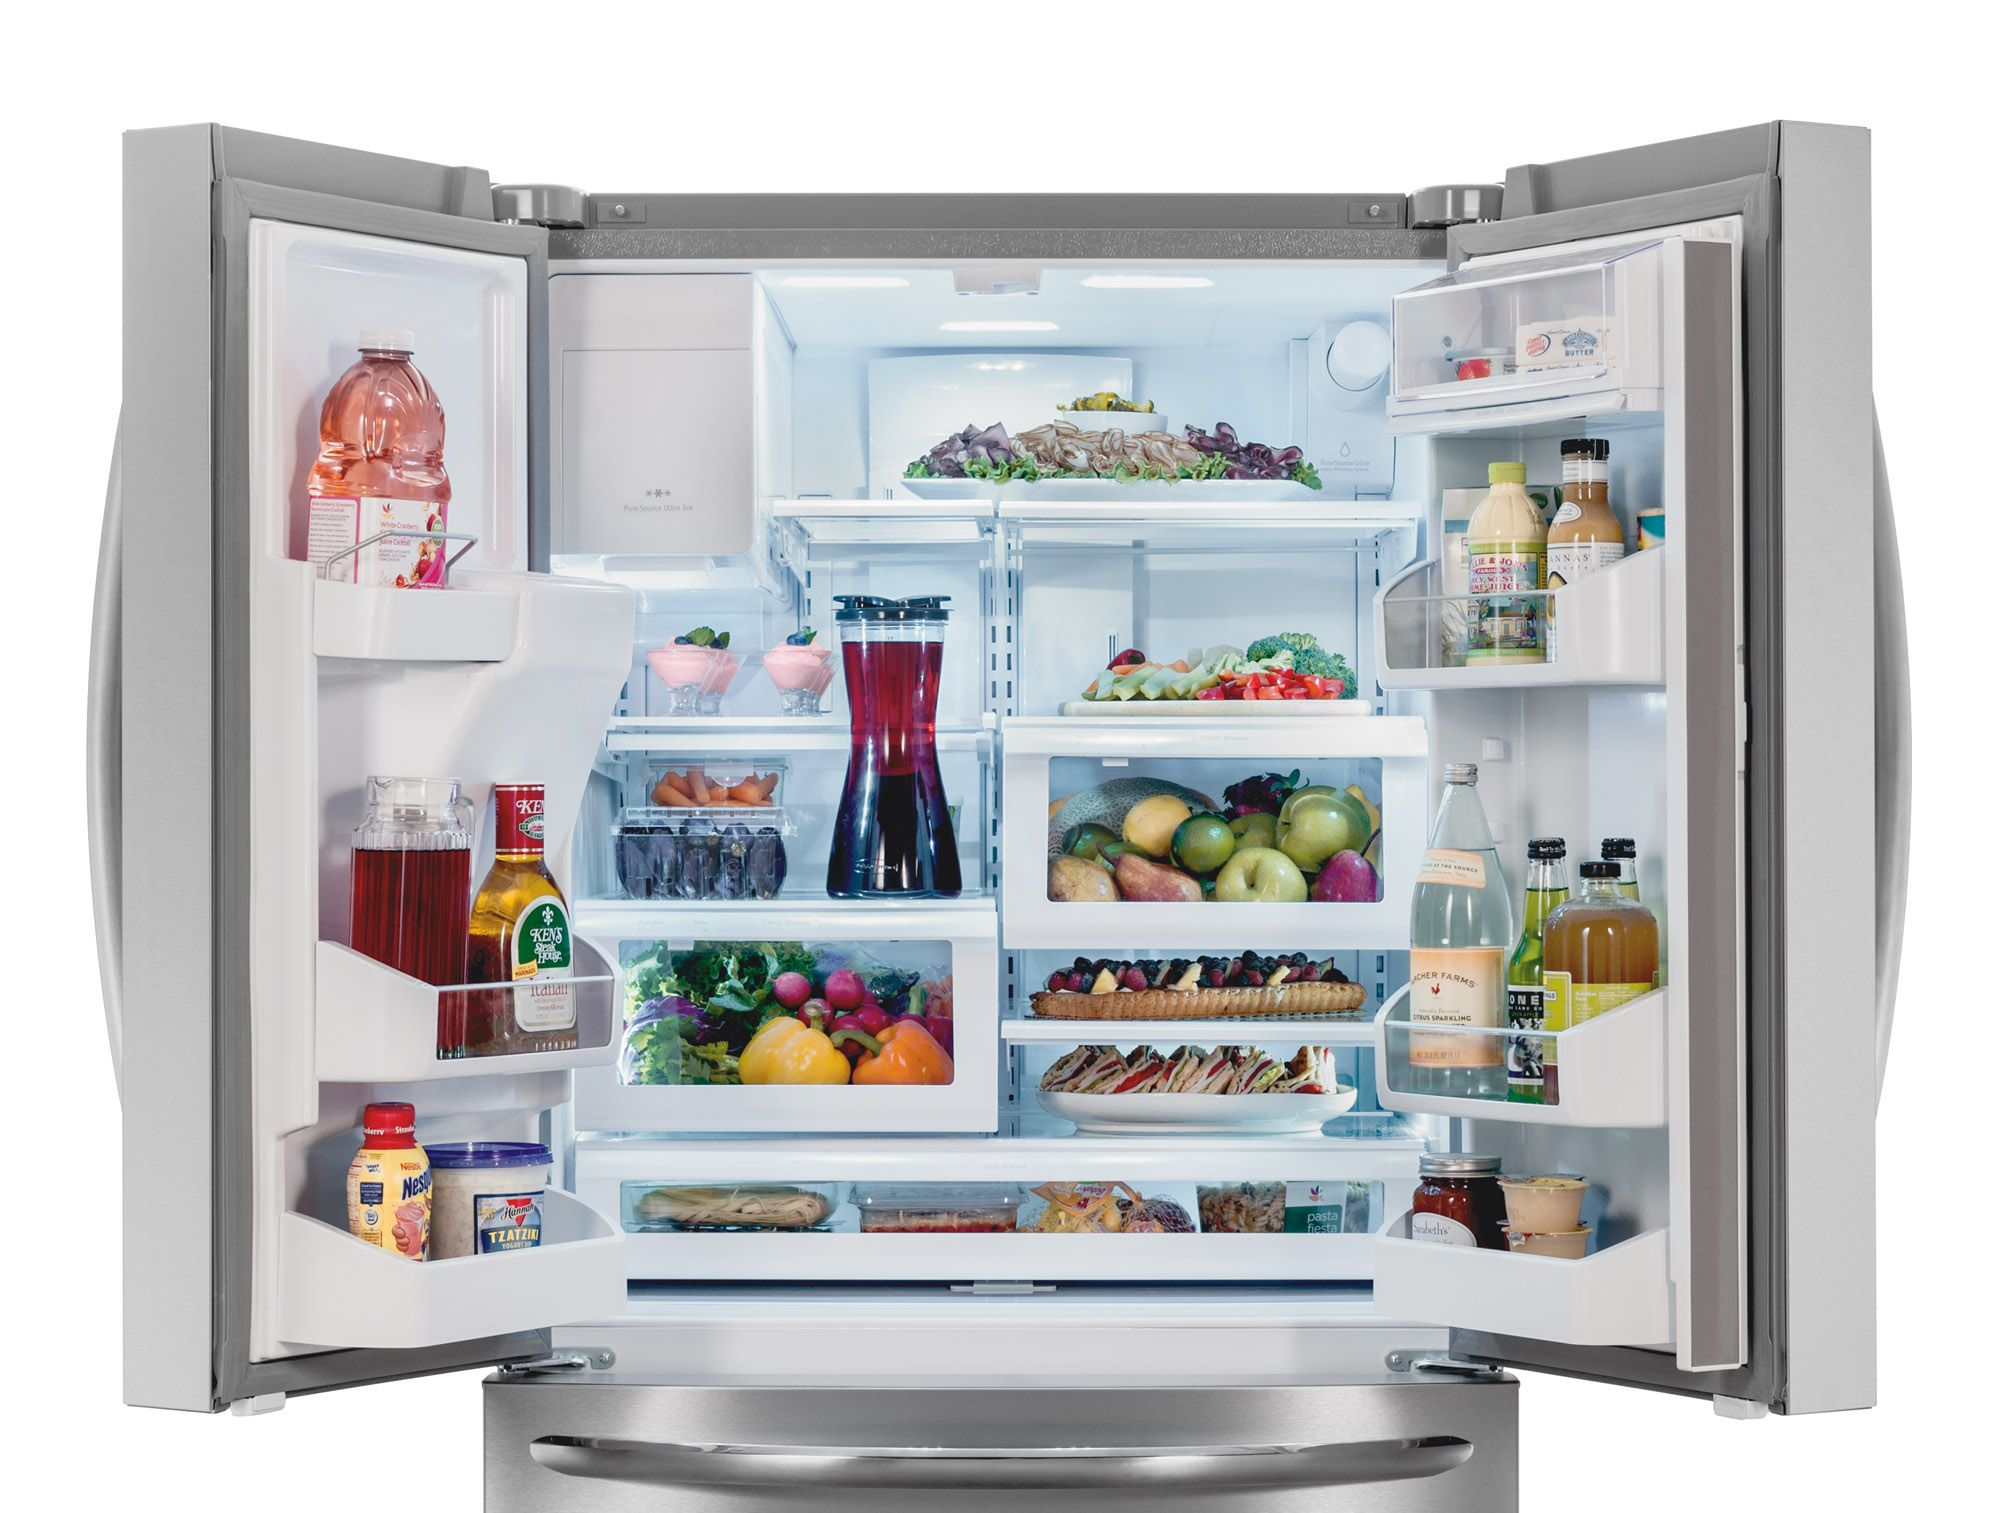 The Frigidaire Spacewise Organization System That Provides More